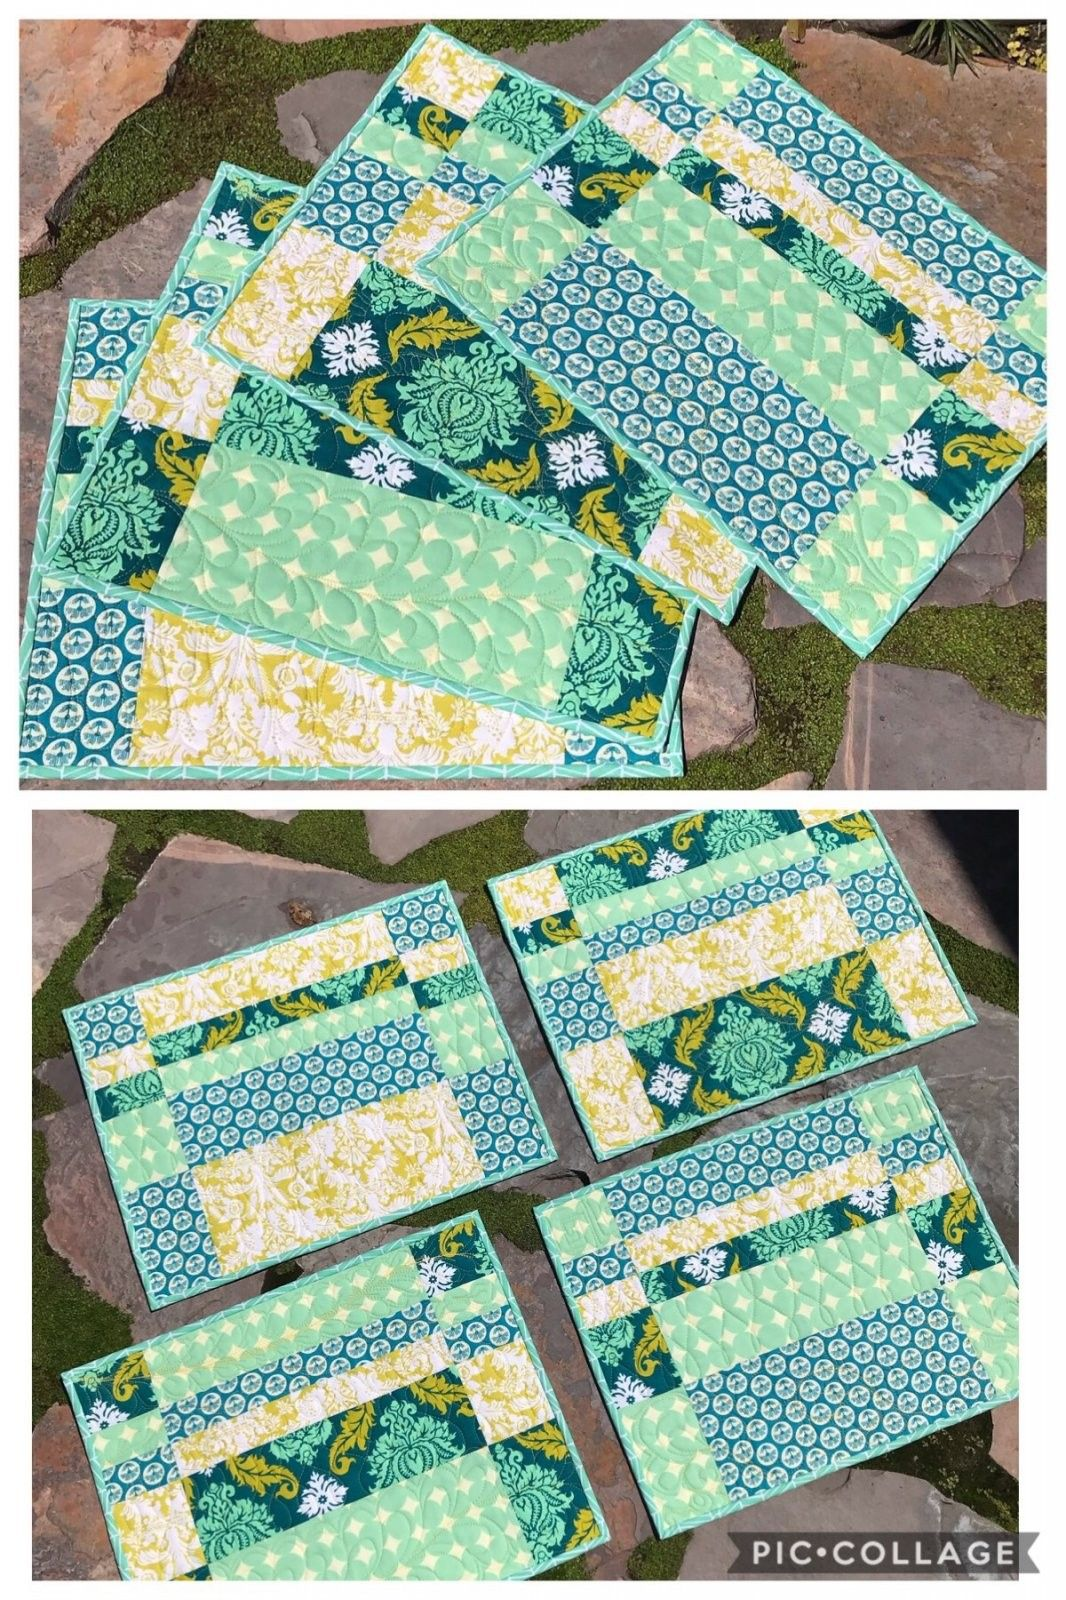 Craftsy Com Express Your Creativity Quilted Placemat Patterns Placemats Patterns Place Mats Quilted